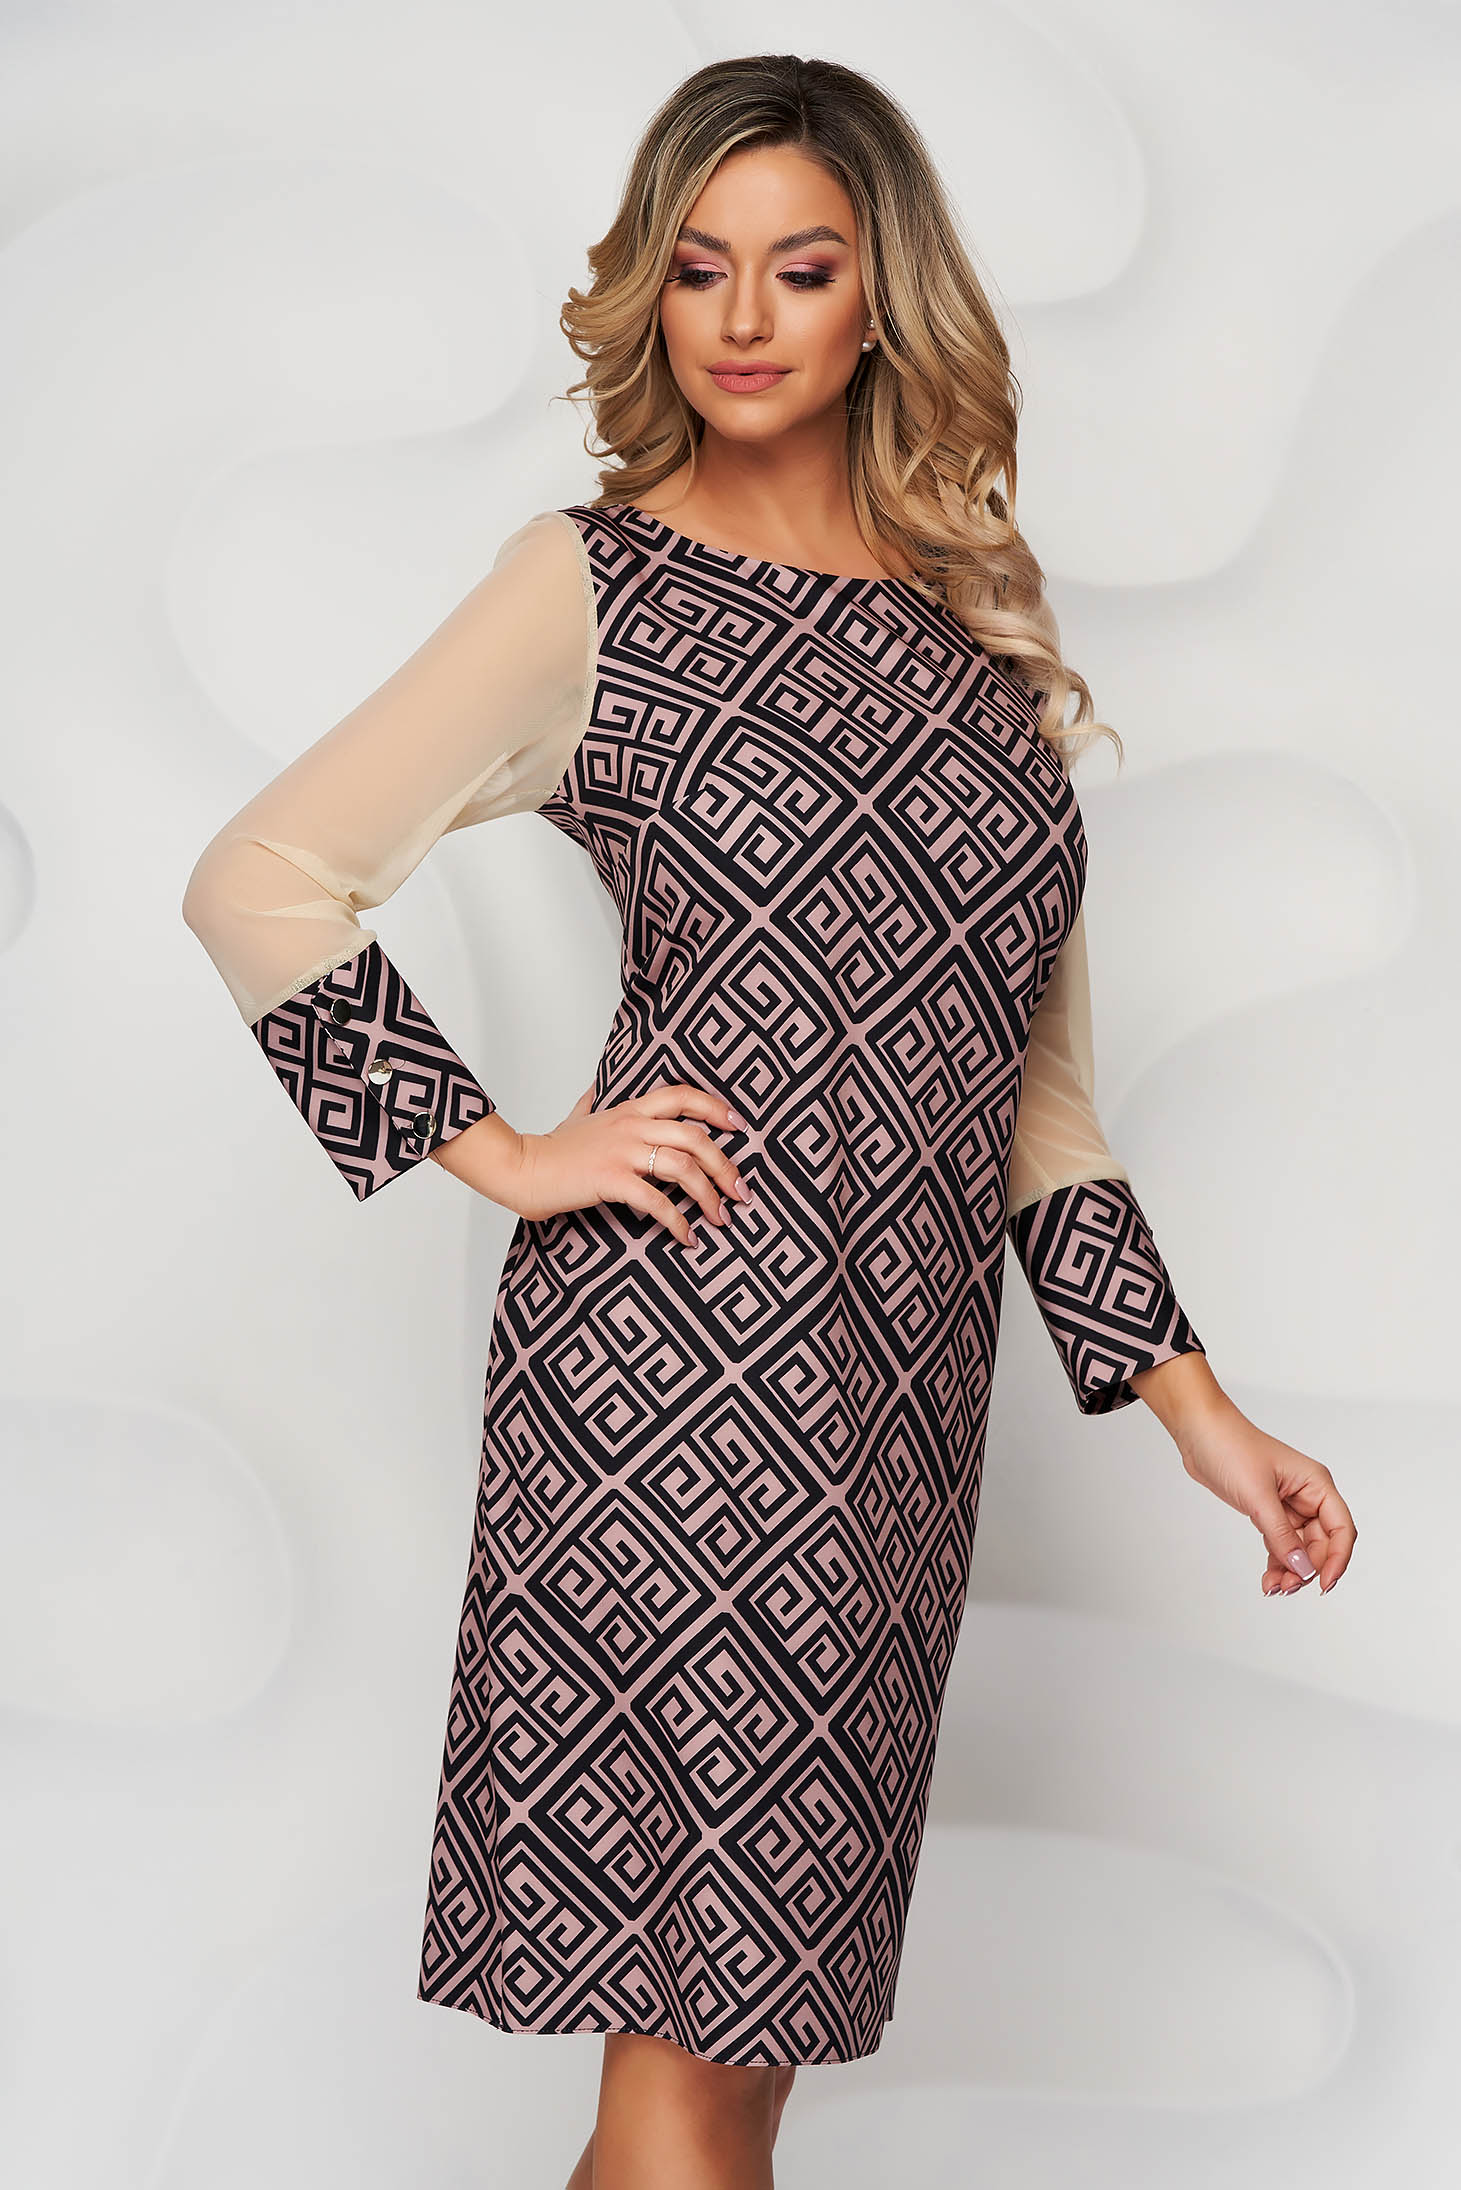 With graphic details office straight transparent sleeves pink dress